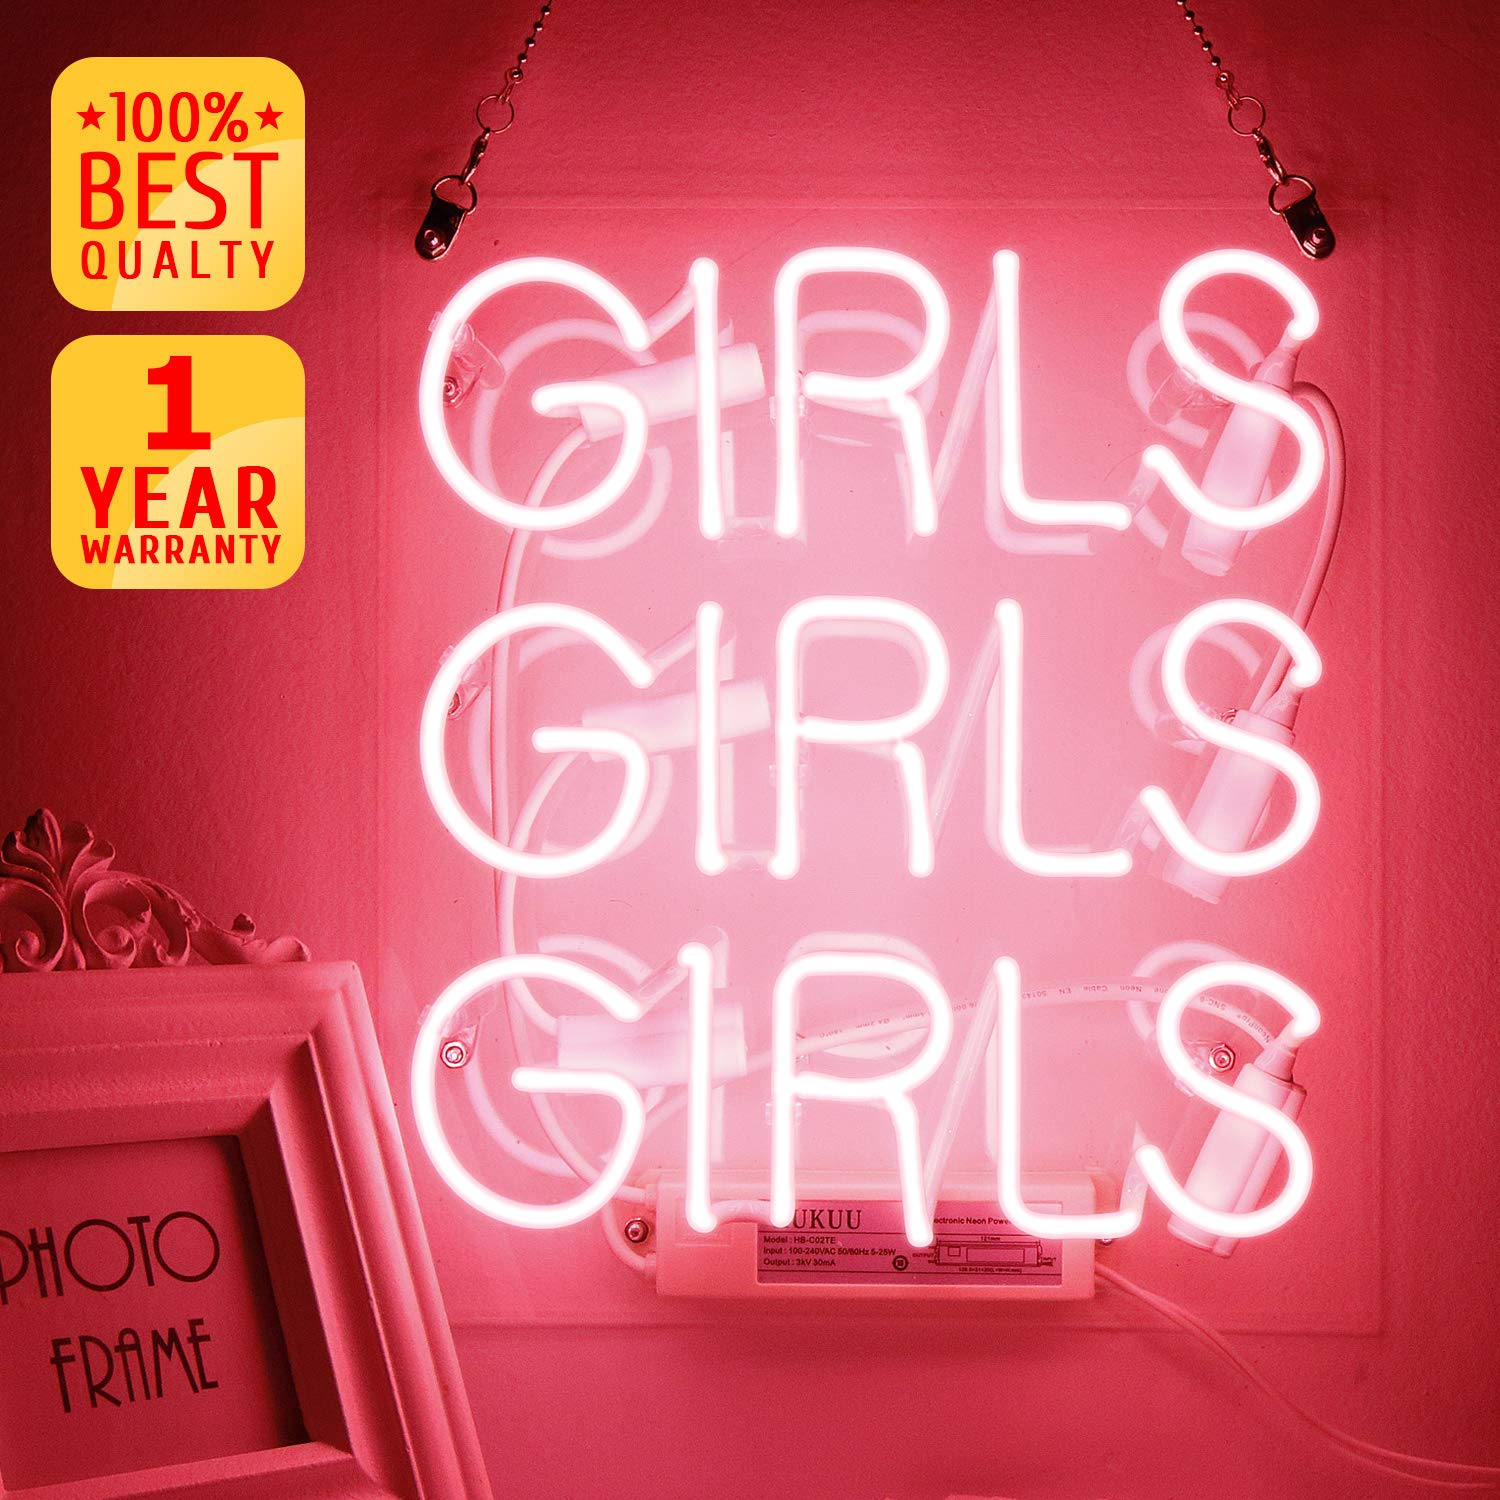 Neon Signs, Neon Light Sign Led Neon Lamp, Wall Sign Art Decorative Signs Lights, Neon Words for Home Bedroom Room Decor Bar Beer Office for Party Holiday Wedding Decoration Sign - (Pink Girls)